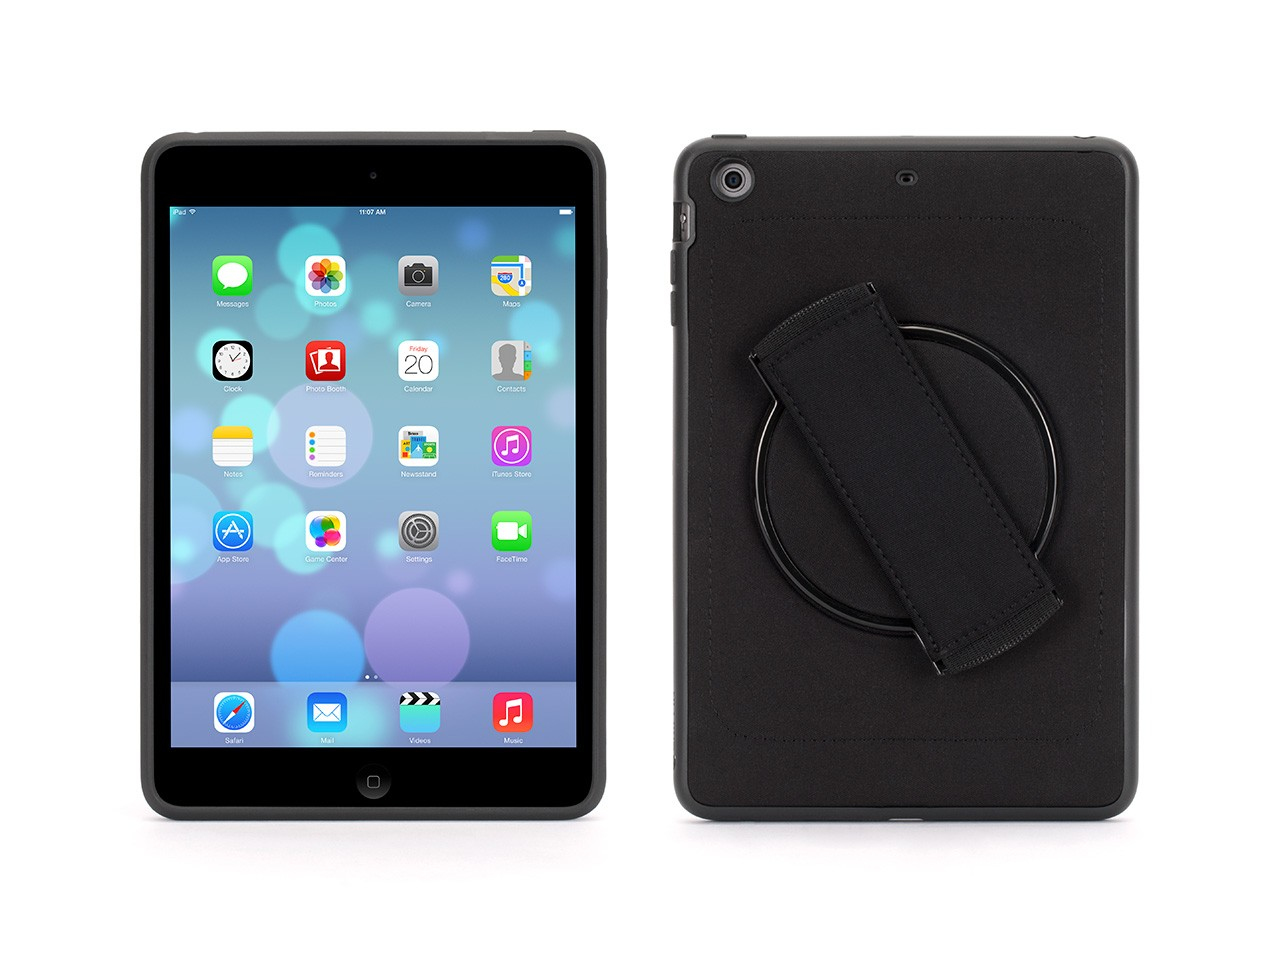 Griffin Apple iPad Mini 2/3 AirStrap with Rotating Function Cover Case - Black - (GB39054-2)